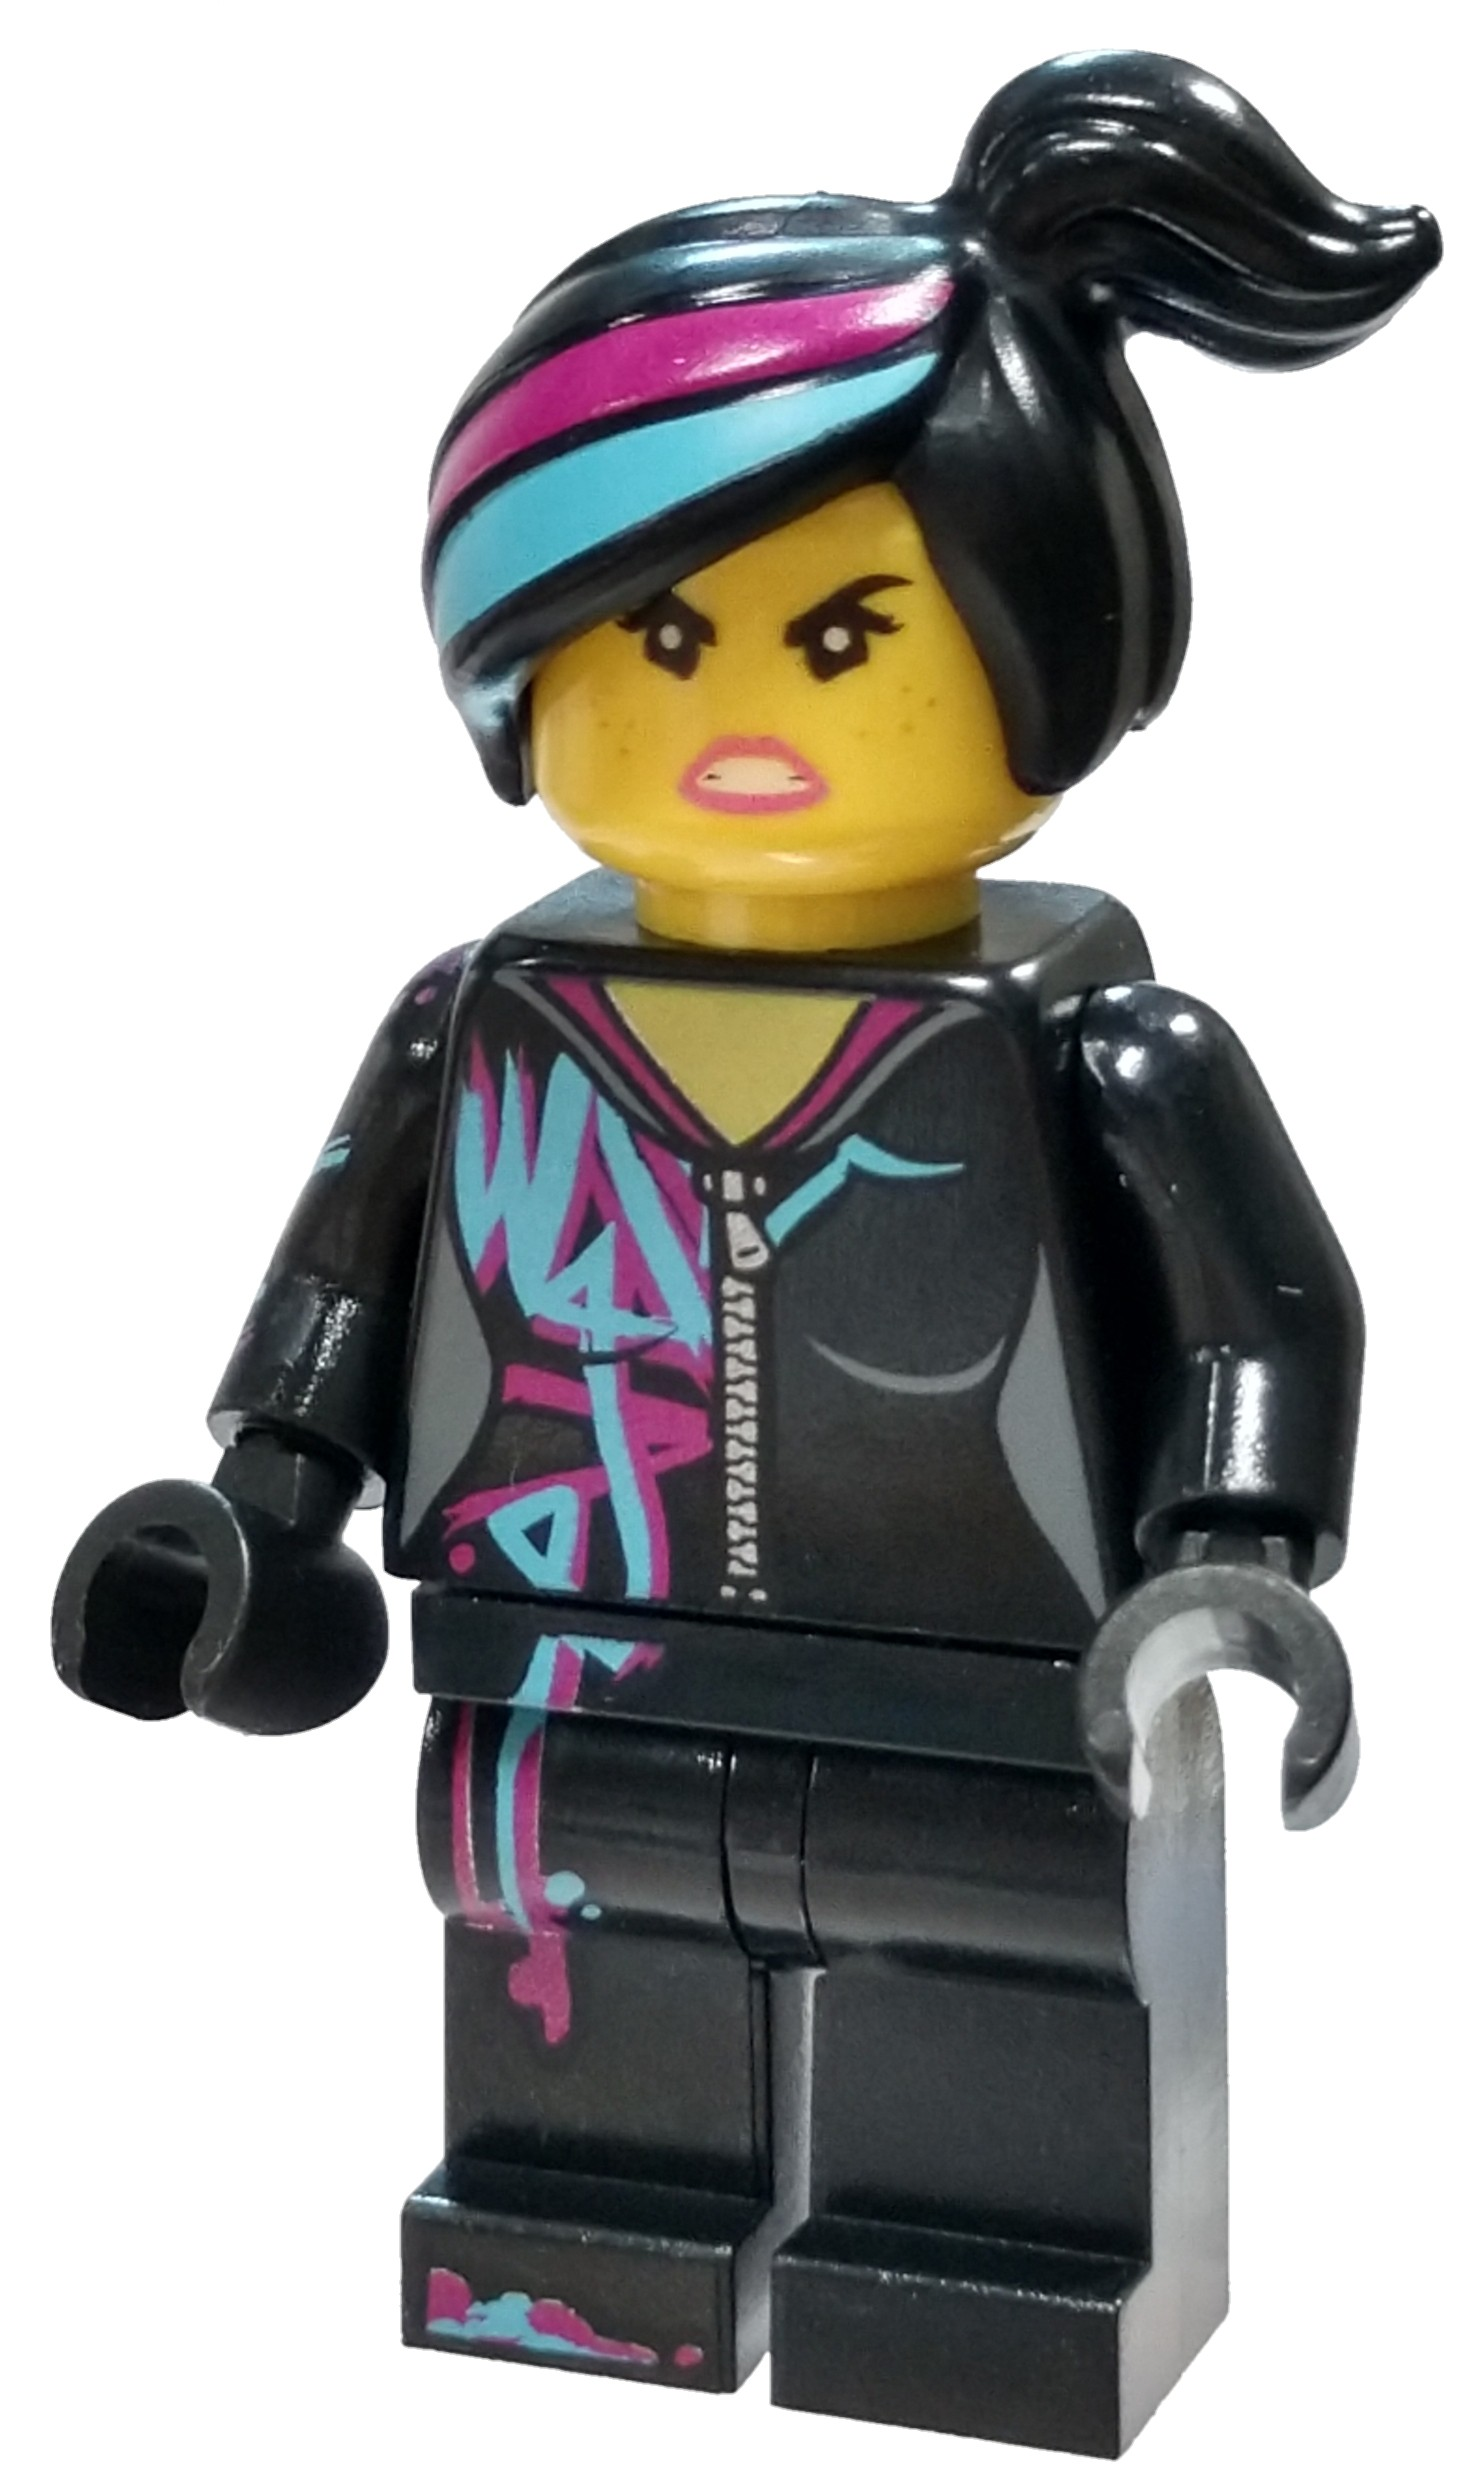 The Lego Movie 2 Lucy Wyldstyle Minifigure Magenta Lined Hoodie No Packaging Walmart Com Walmart Com